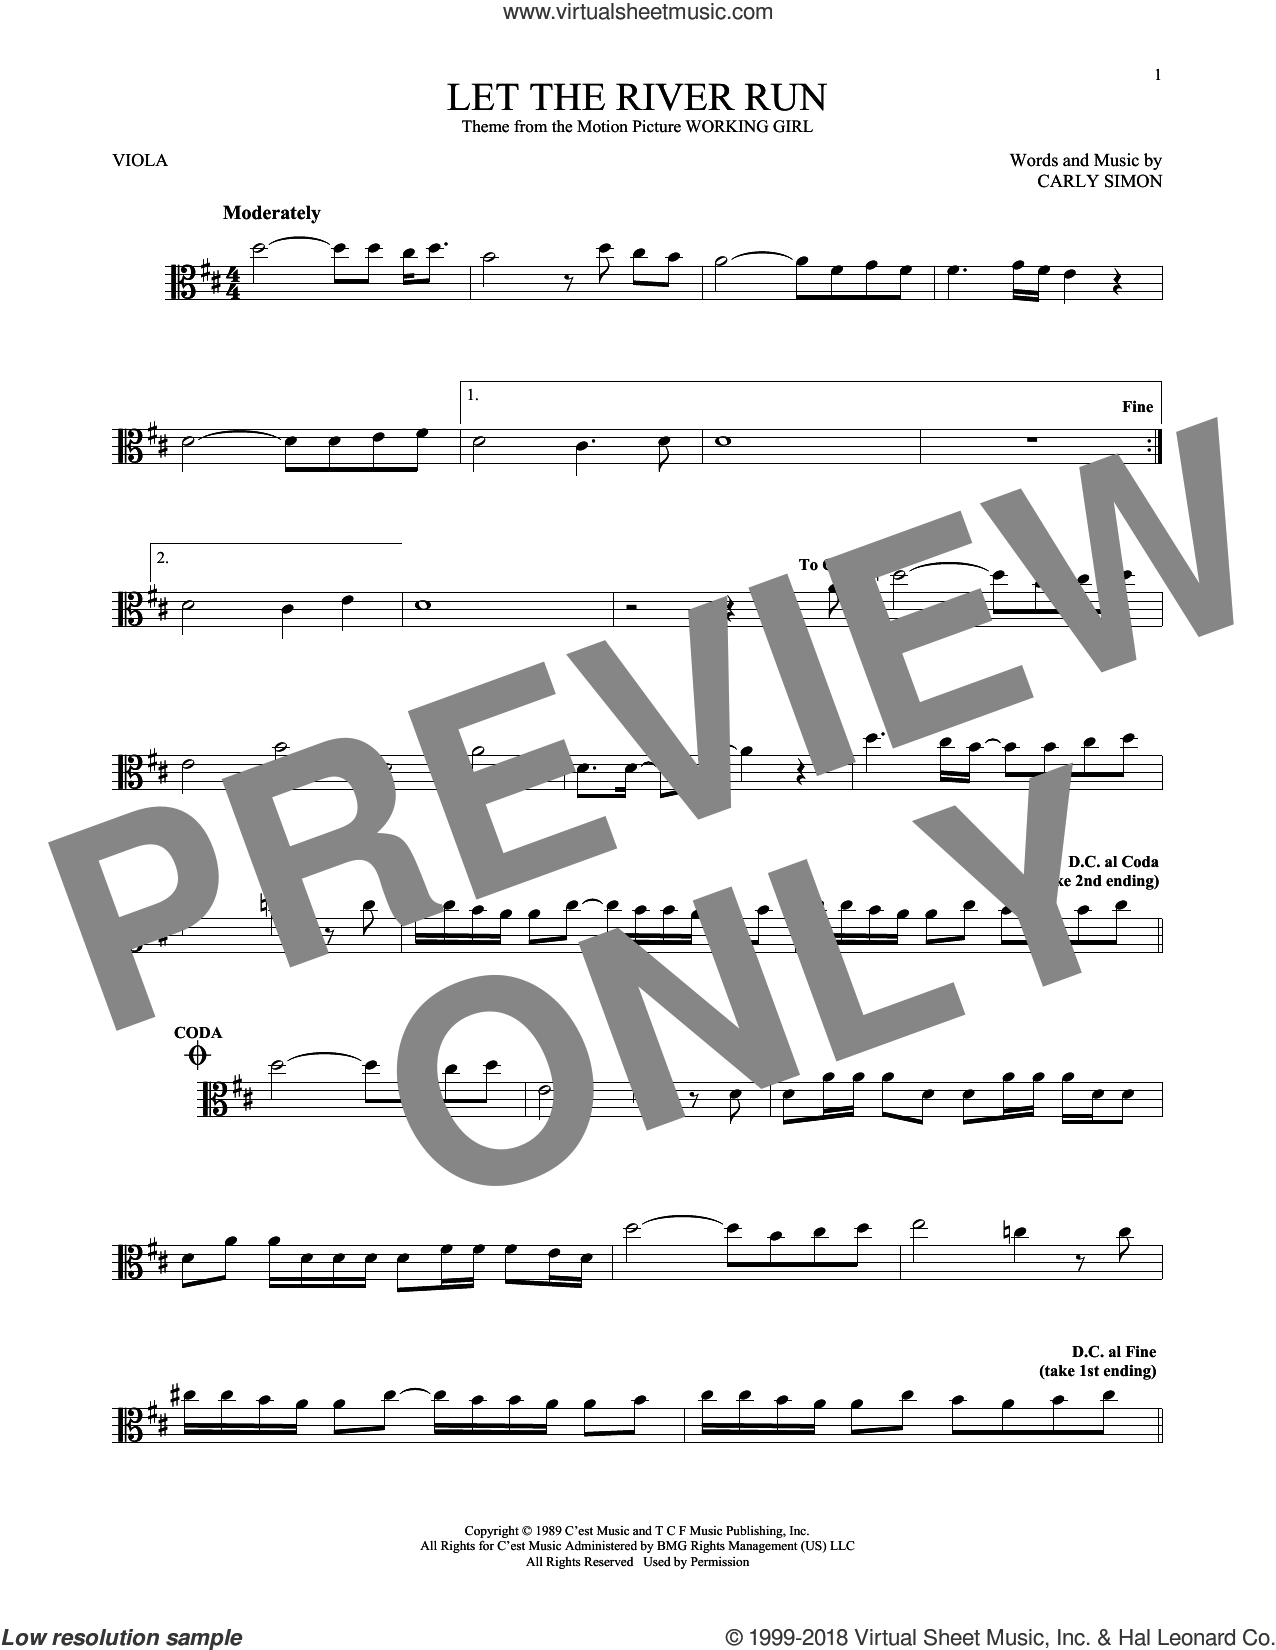 Let The River Run sheet music for viola solo by Carly Simon, intermediate skill level